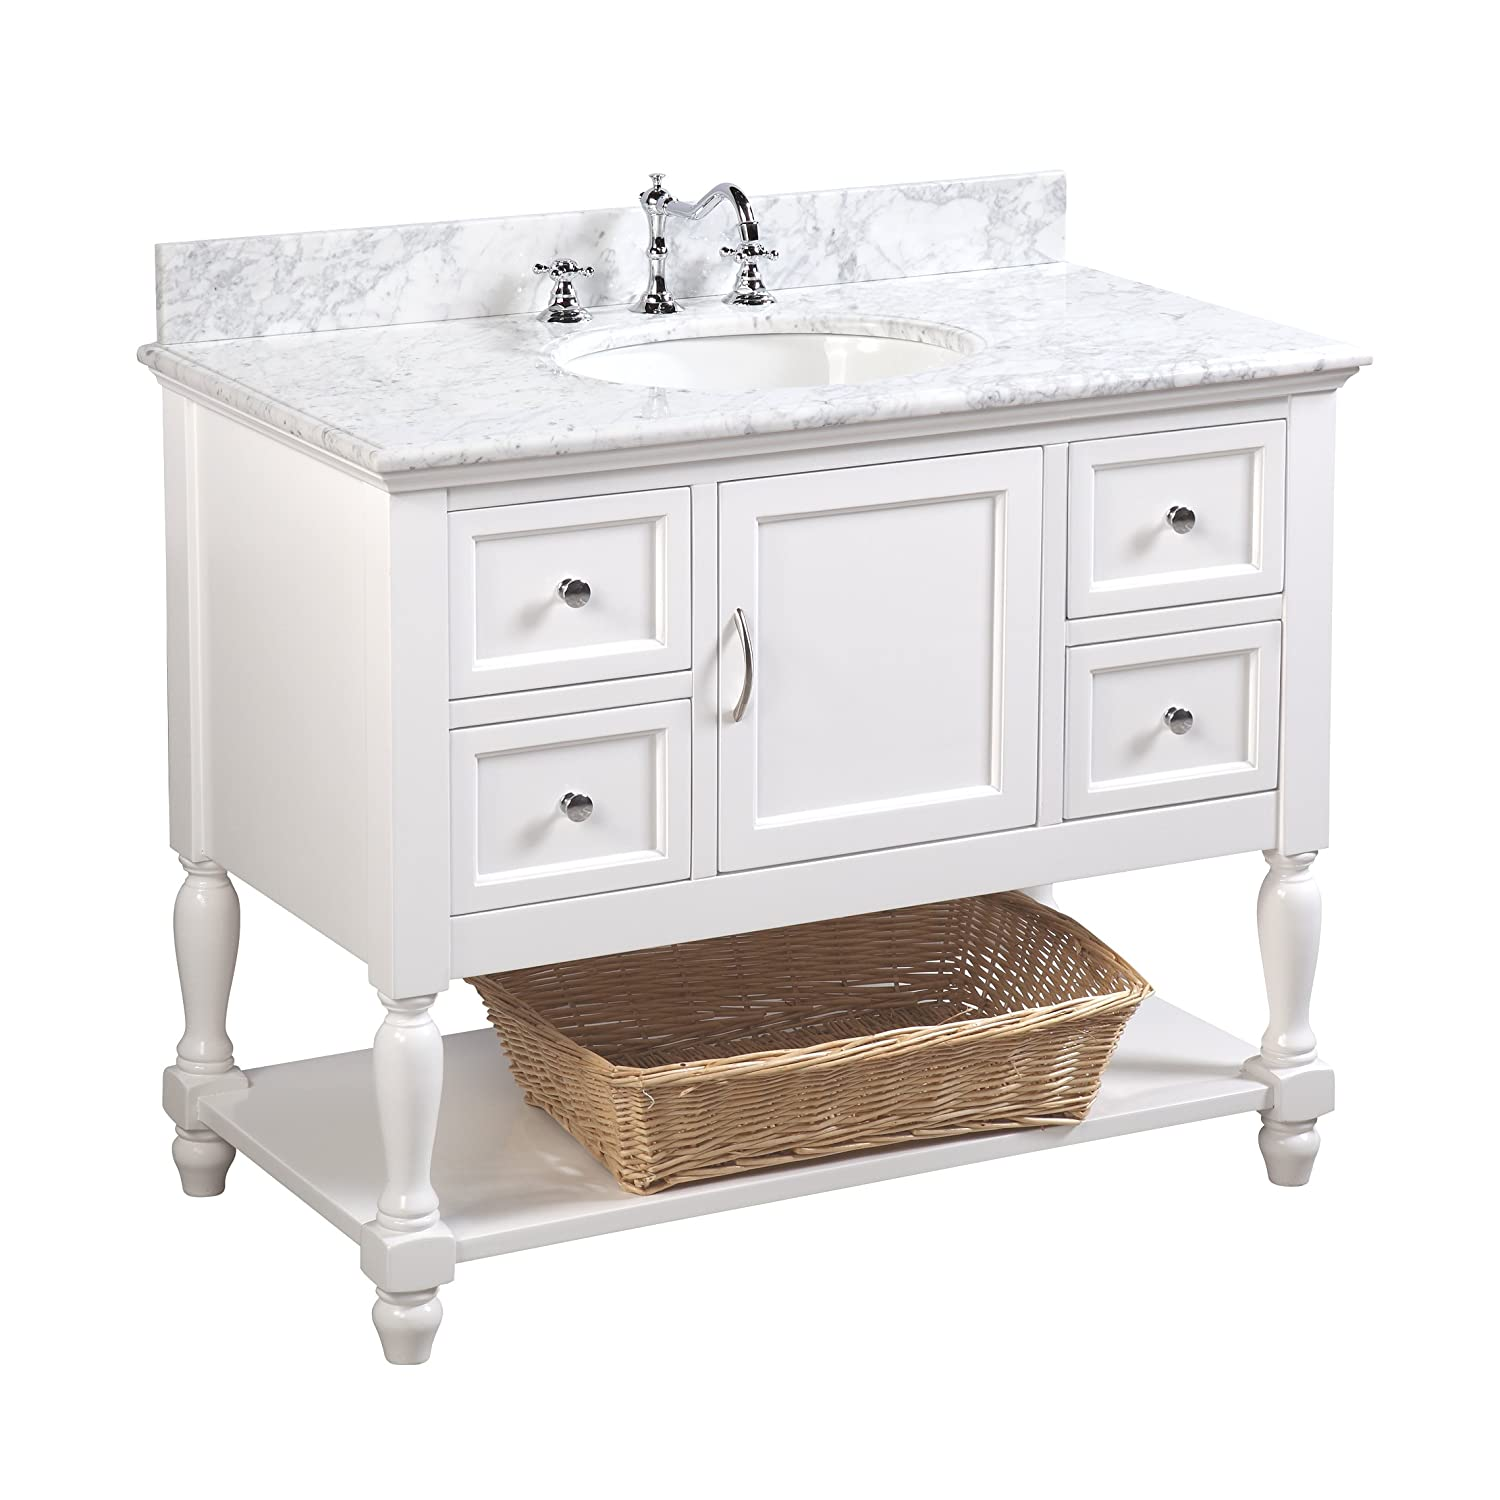 Merveilleux Beverly 42 Inch Bathroom Vanity (Carrara/White): Includes Authentic Italian  Carrara Marble Countertop, White Cabinet With Soft Close Drawers, ...